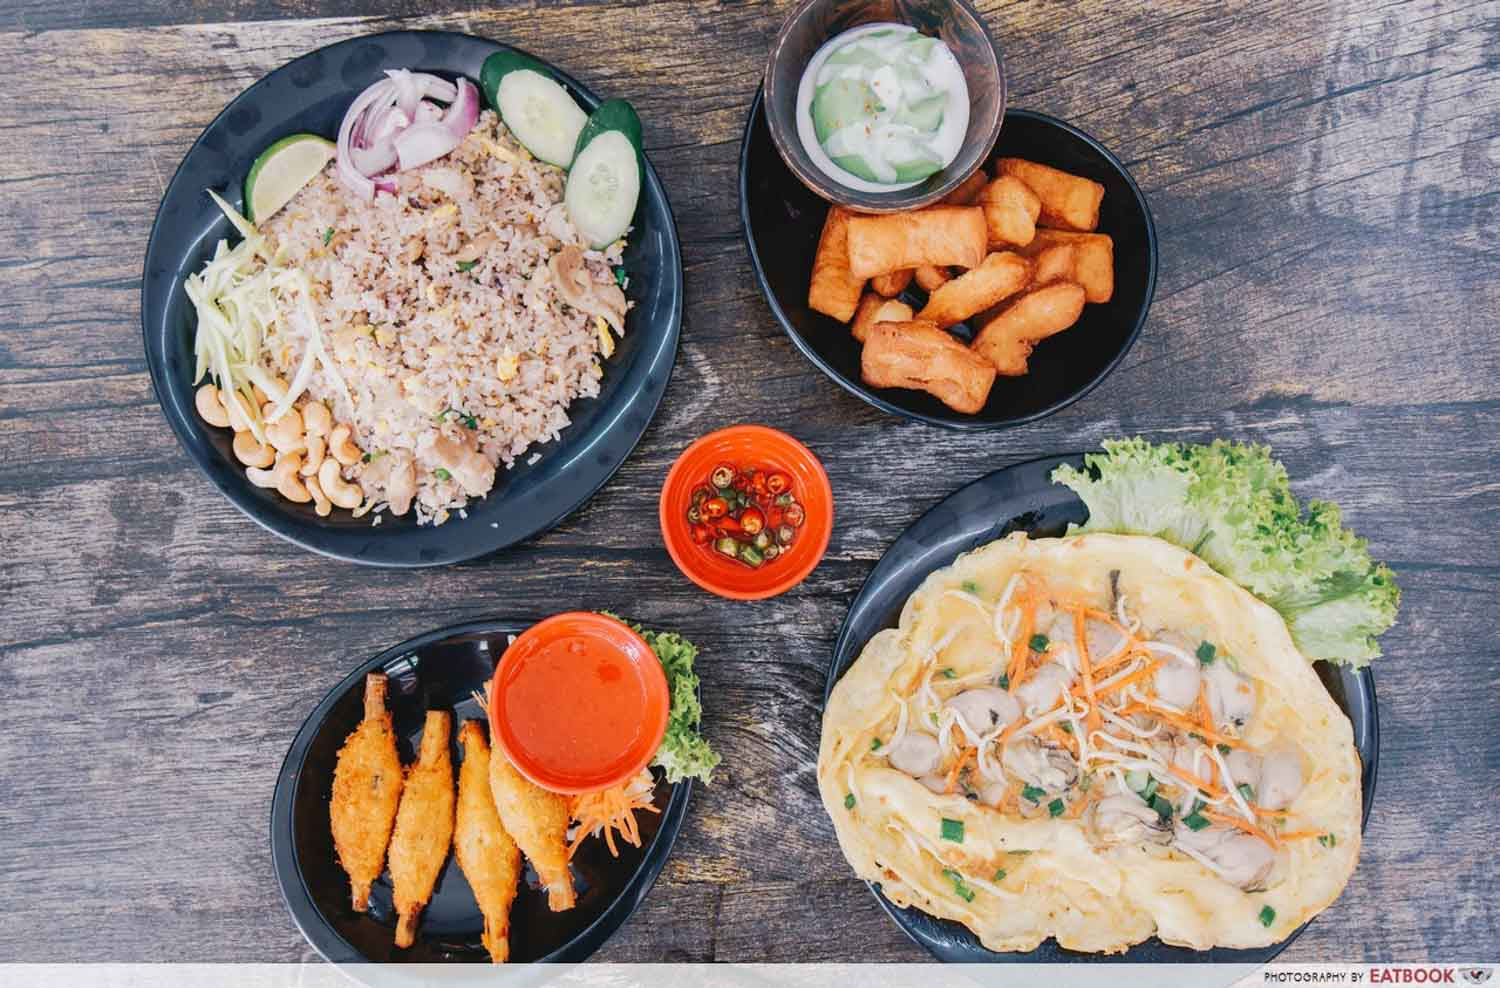 Halal Food Delivery Places - Time for thai